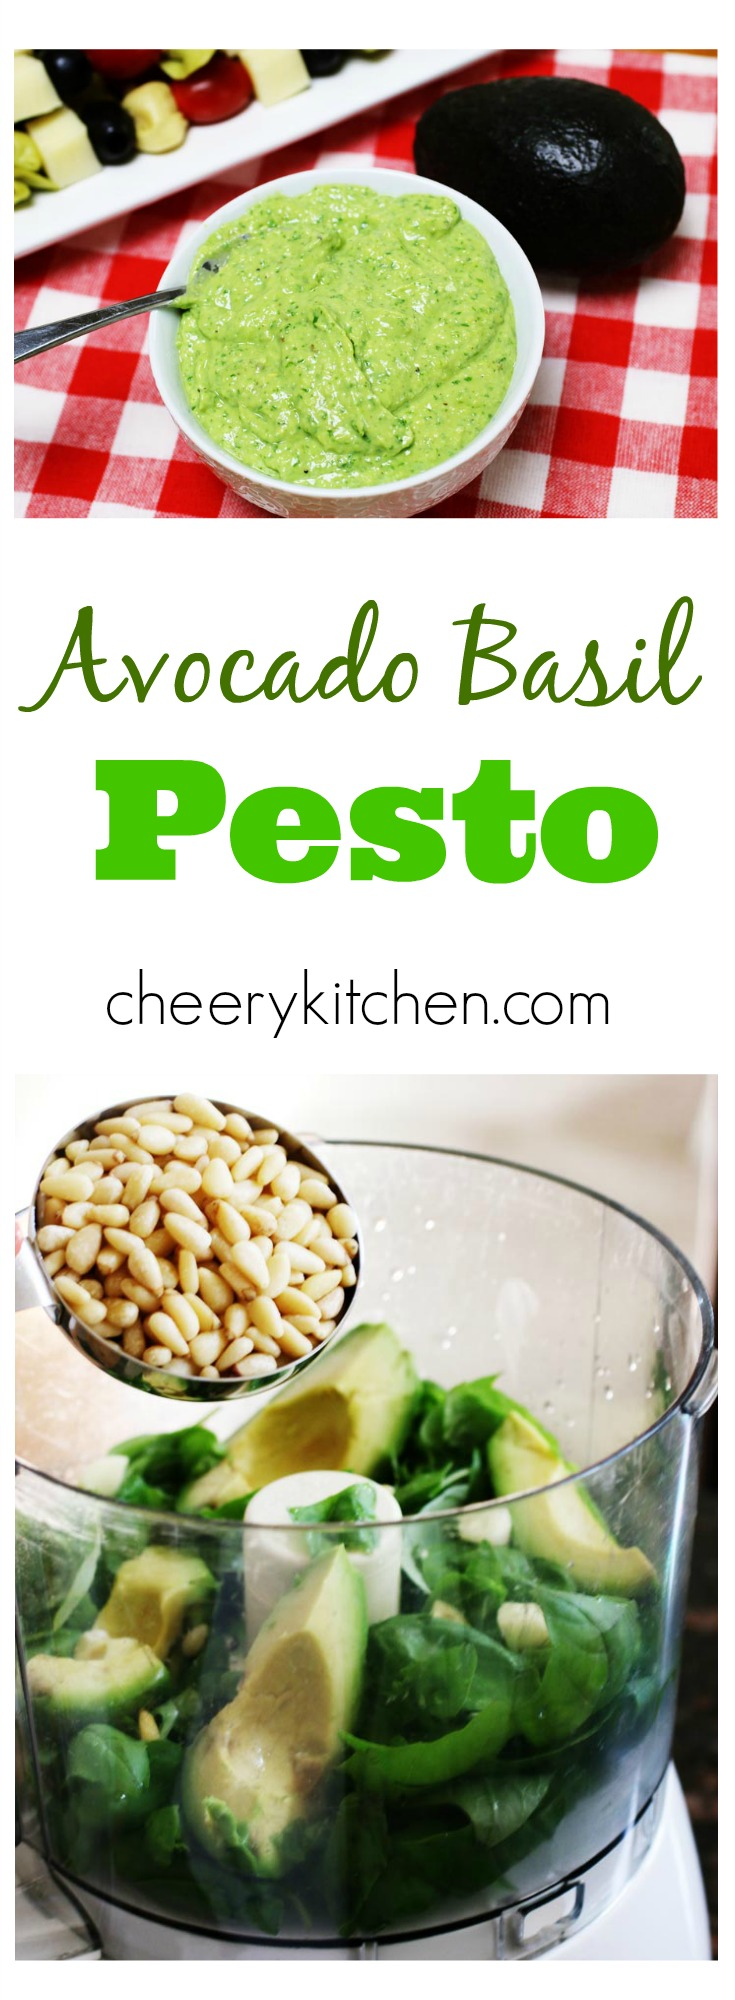 Creamy heart-healthy Avocado Basil Pesto is a sauce you can toss with pasta, dip into with your favorite veggies, spread on sandwiches, or dress your salads. It's perfectly delicious for about $5 in 5 minutes!